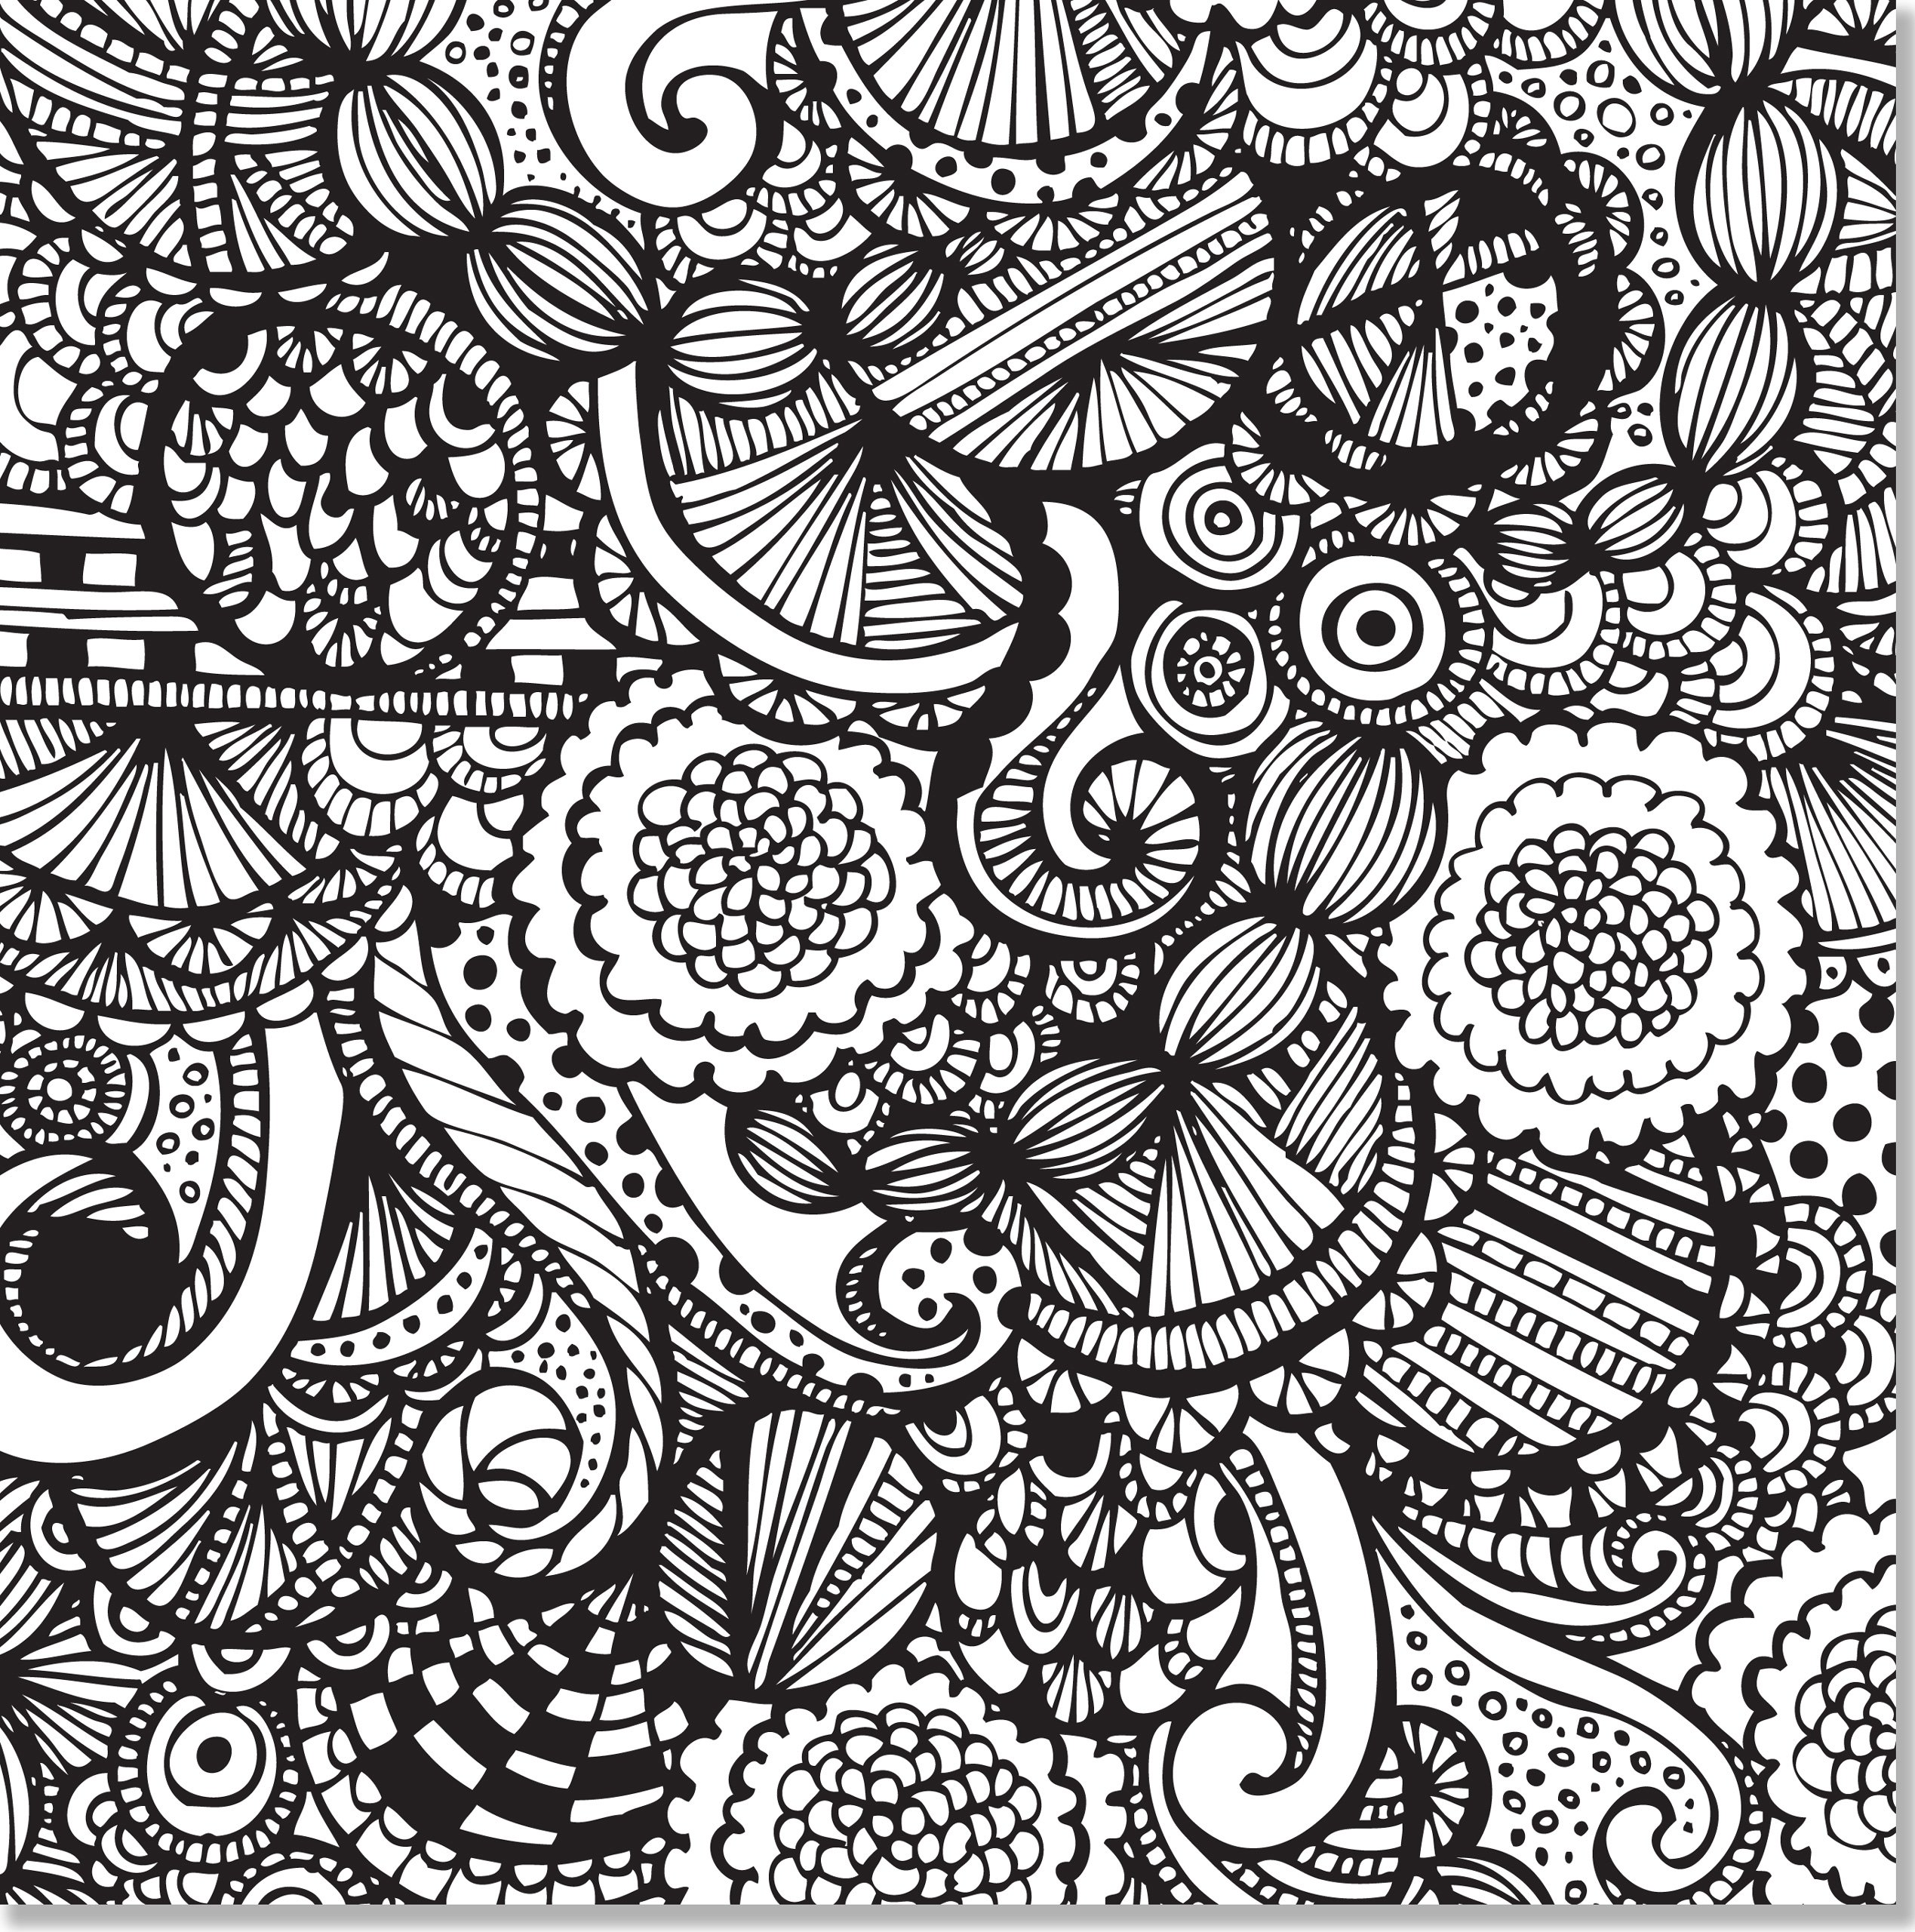 - Joyful Designs Adult Coloring Book (31 Stress-relieving Designs